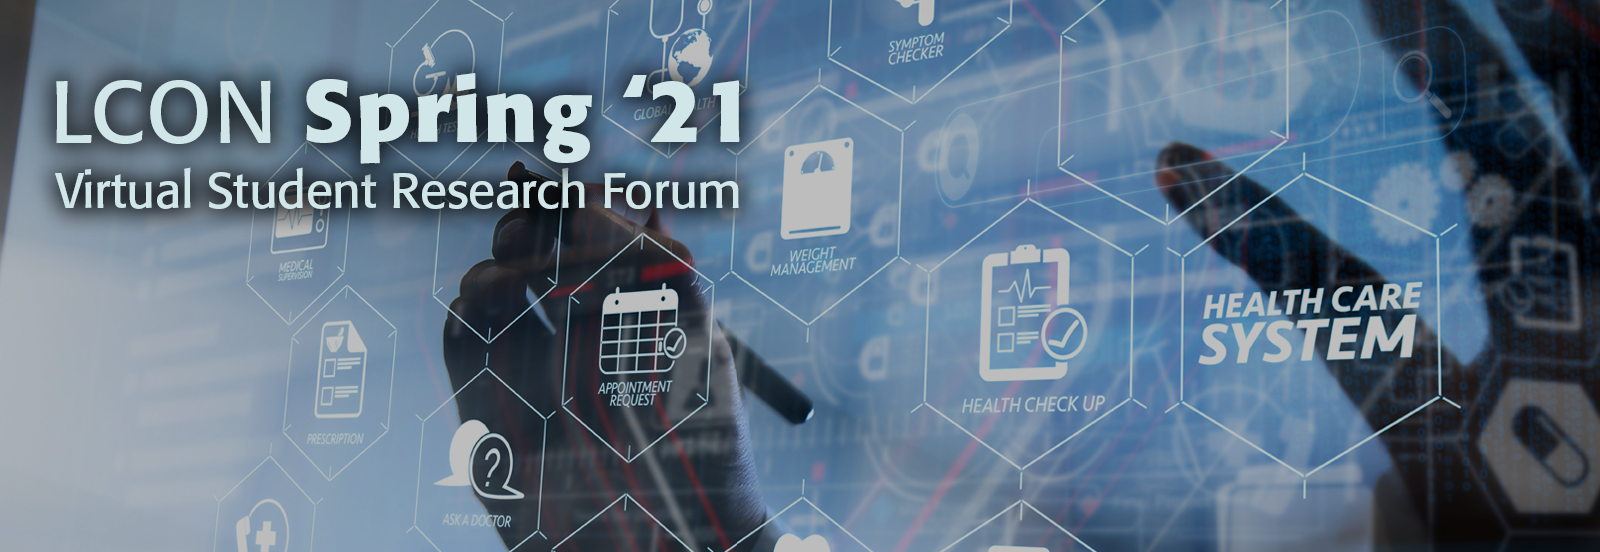 Healthcare research image with LCON Spring '21 Virtual Student Research Forum written on top